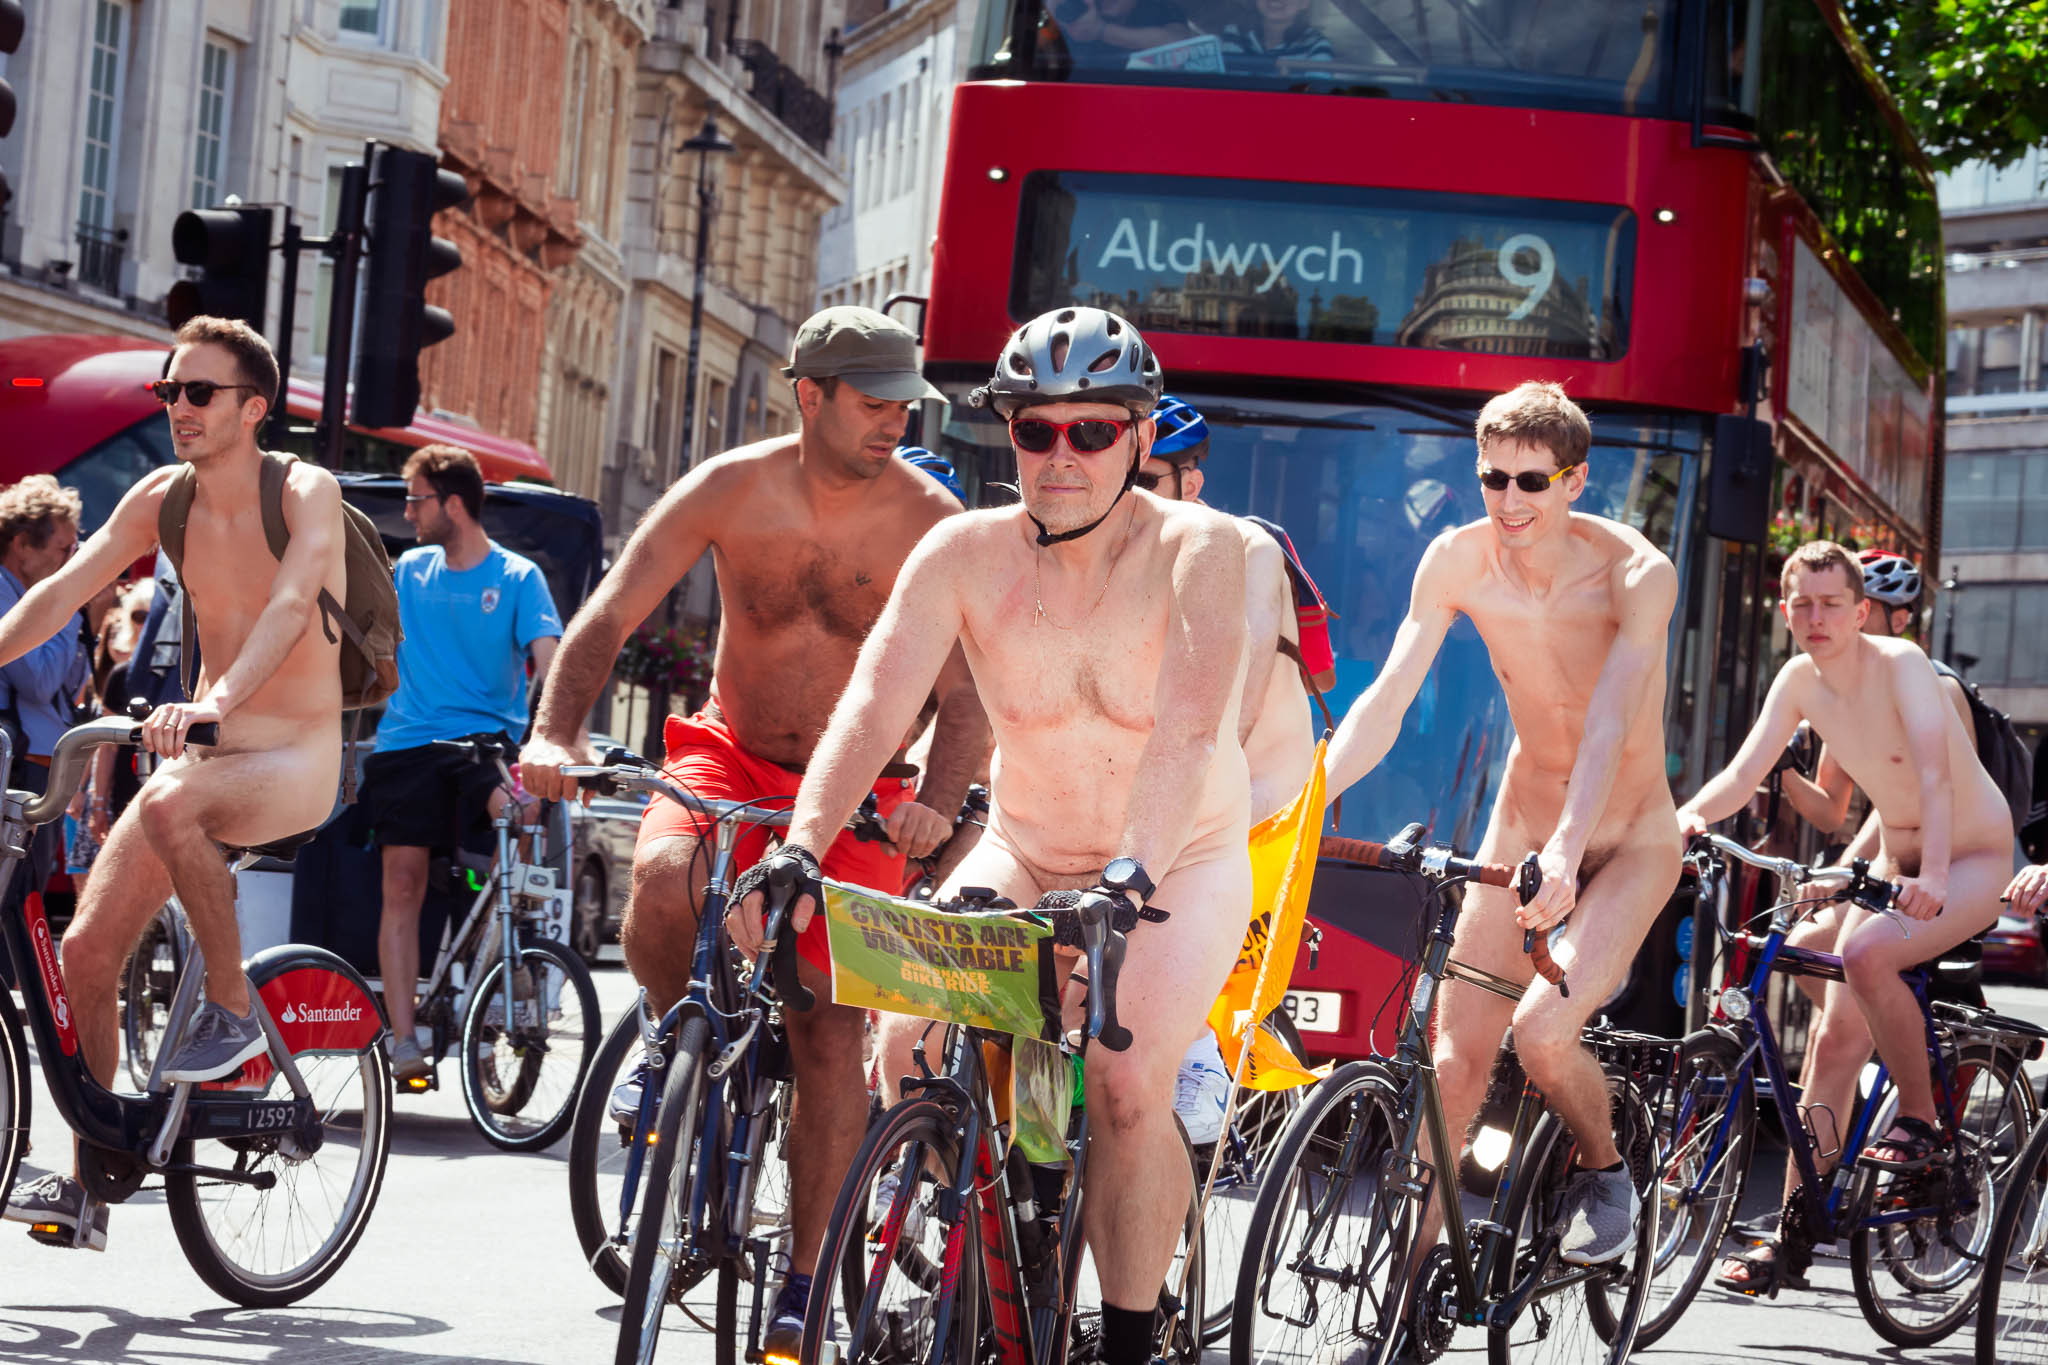 _MG_1718 Naked Bike Ride London 190617 by Alexander Ivanov Photography for web